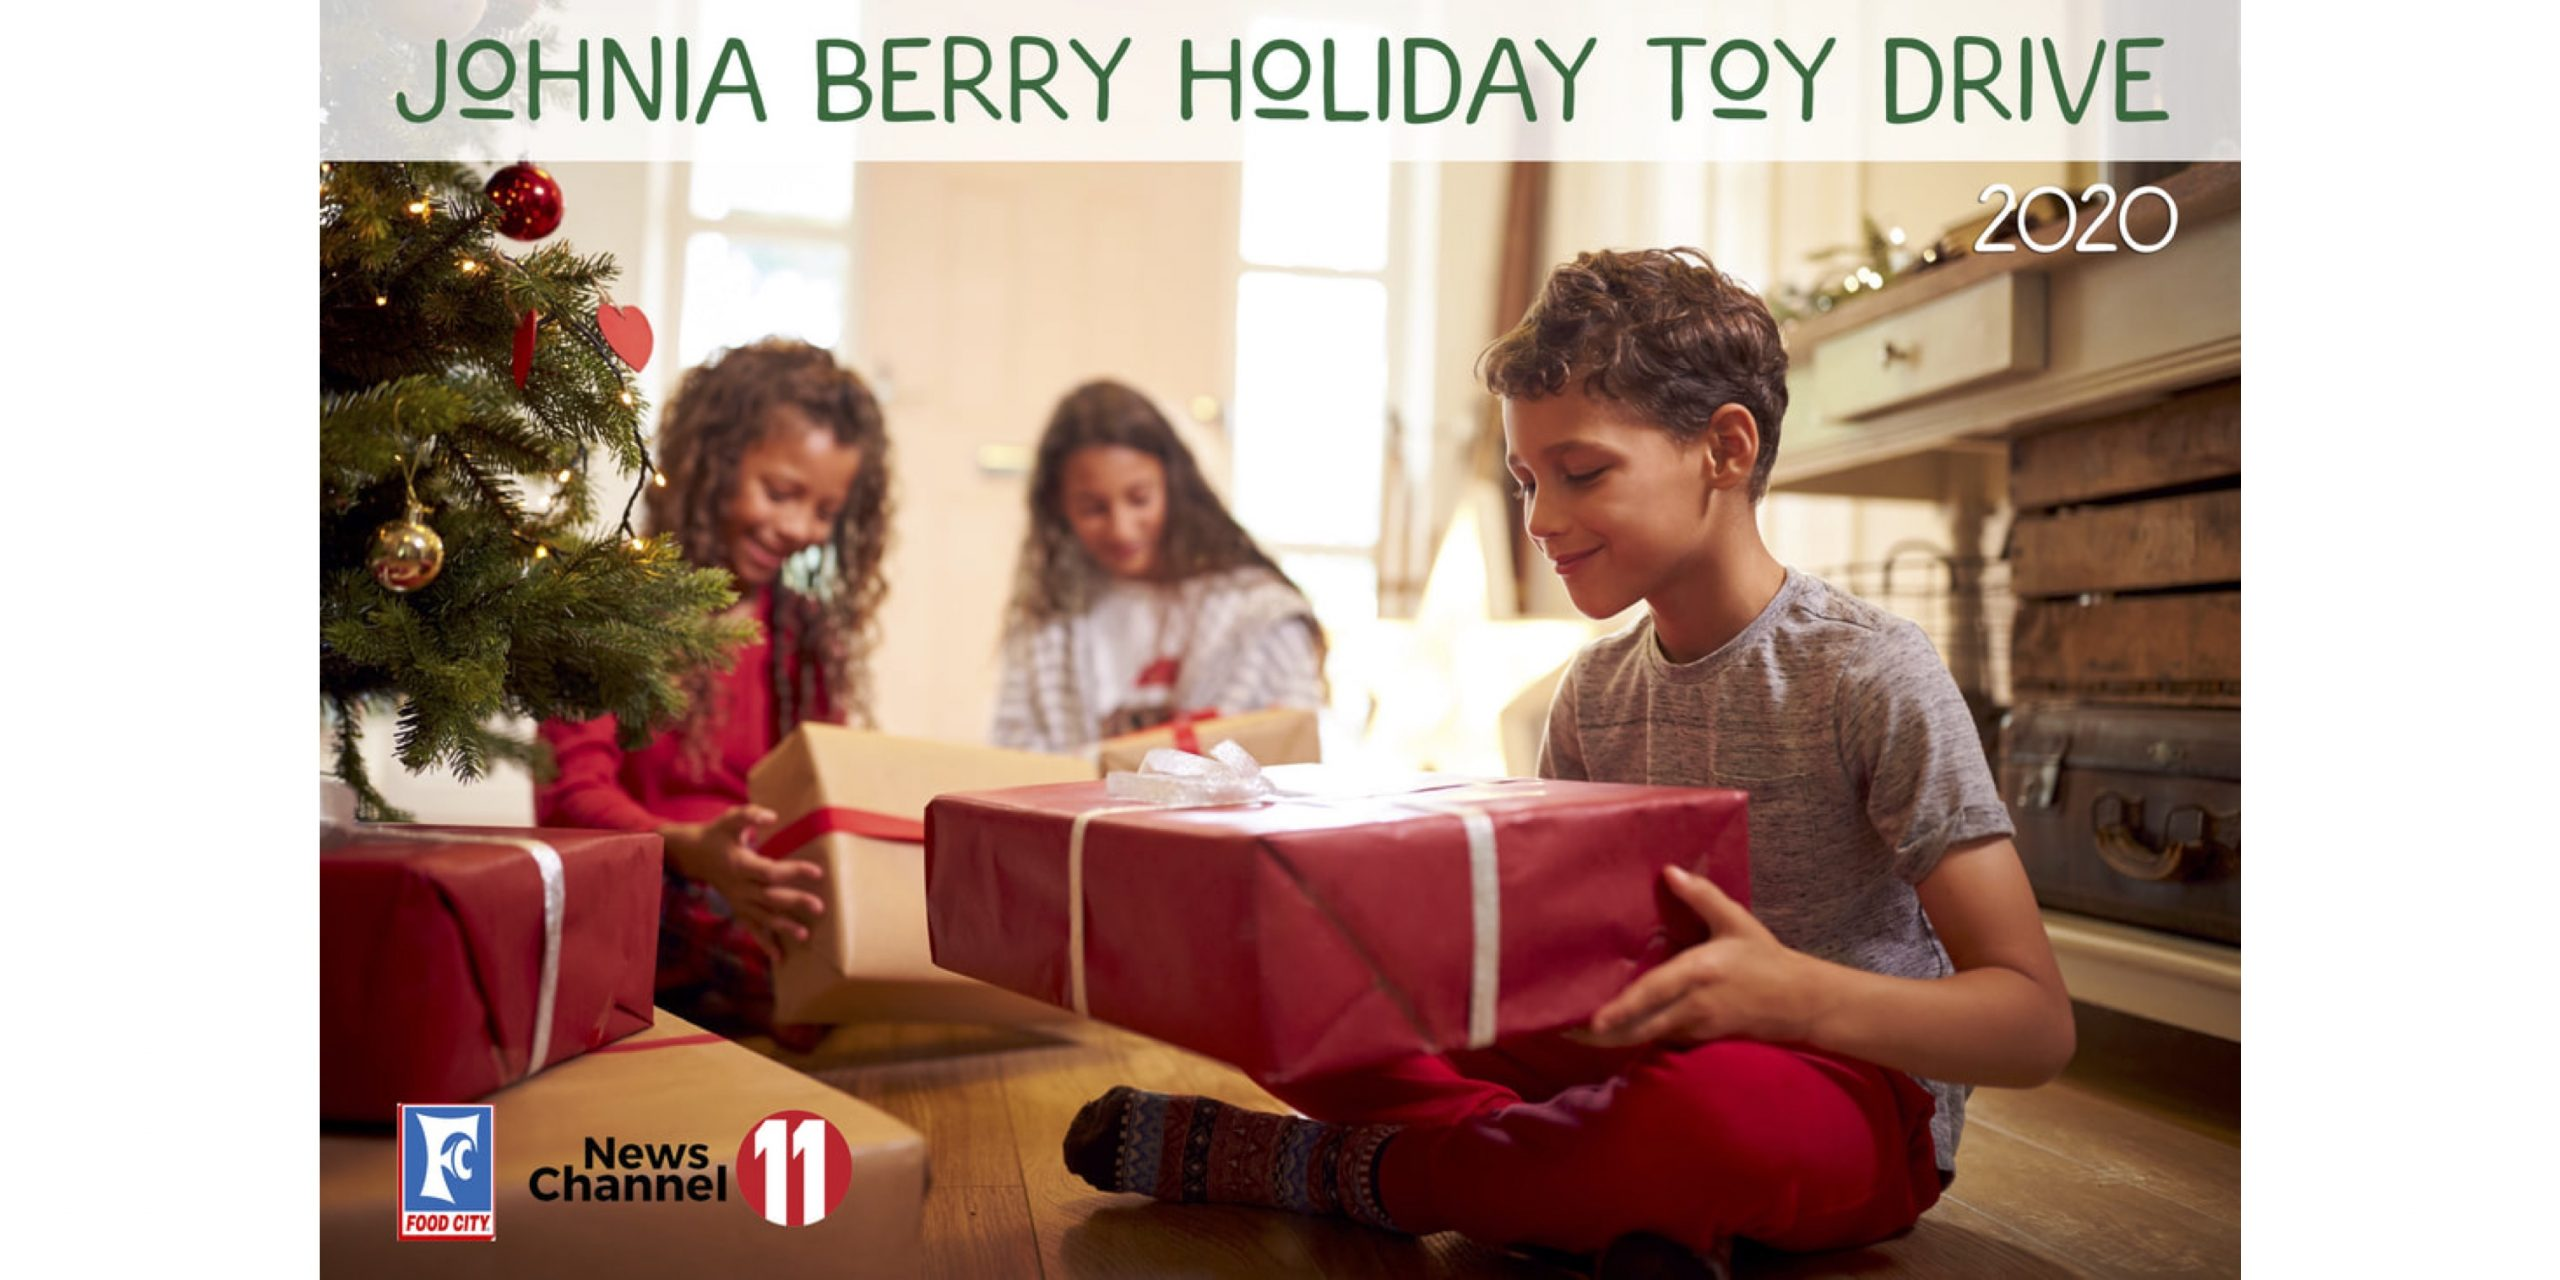 Johnia Berry Virtual Toy Drive 2020